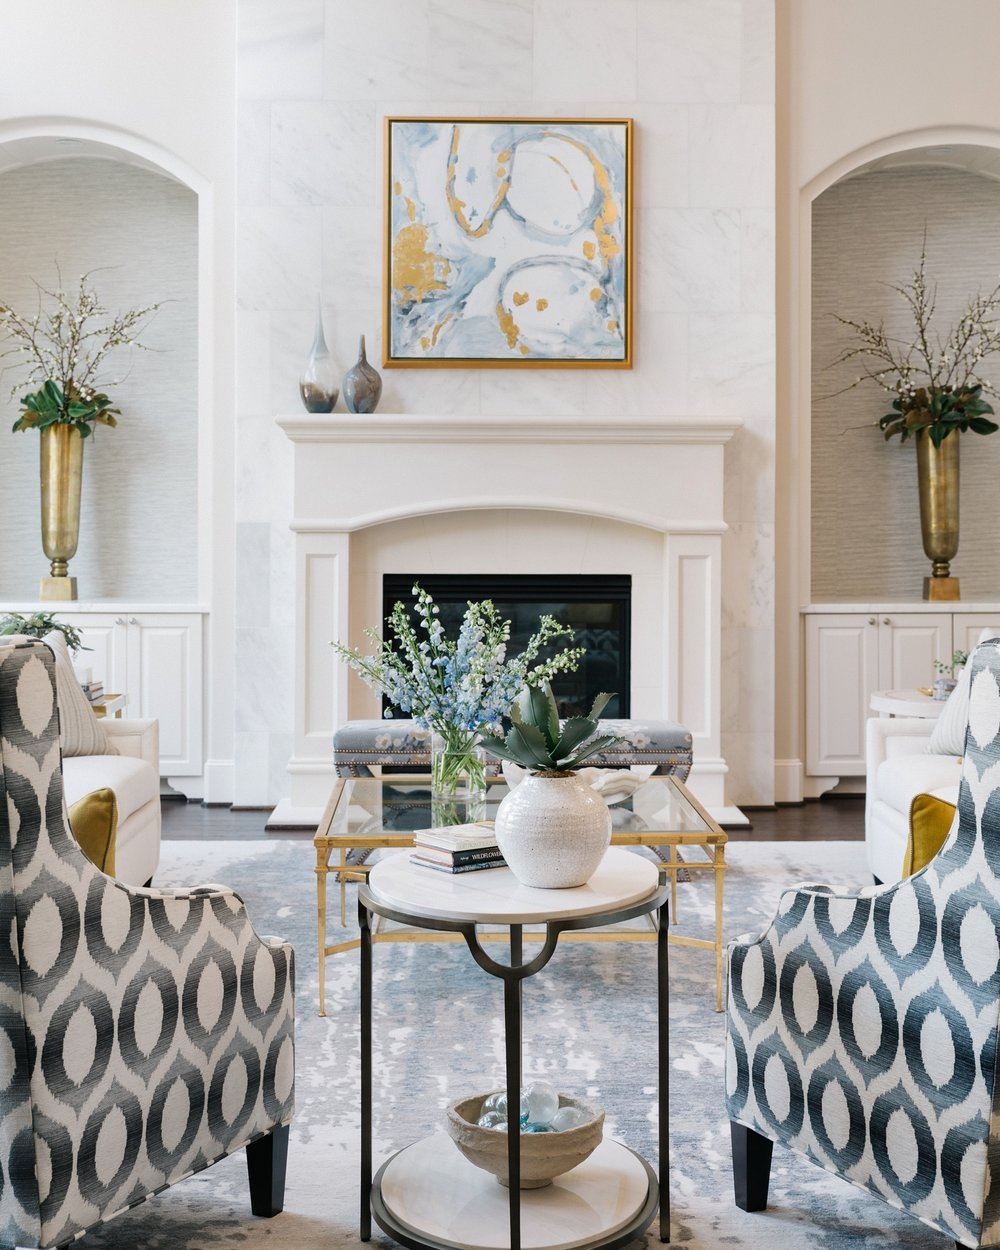 Lovely living room with white marble clad fireplace | Designer: Carla Aston, Contractor: Shaun Bain, Photographer: Colleen Scott #livingroom #livingroomideas #marblefireplace #niches